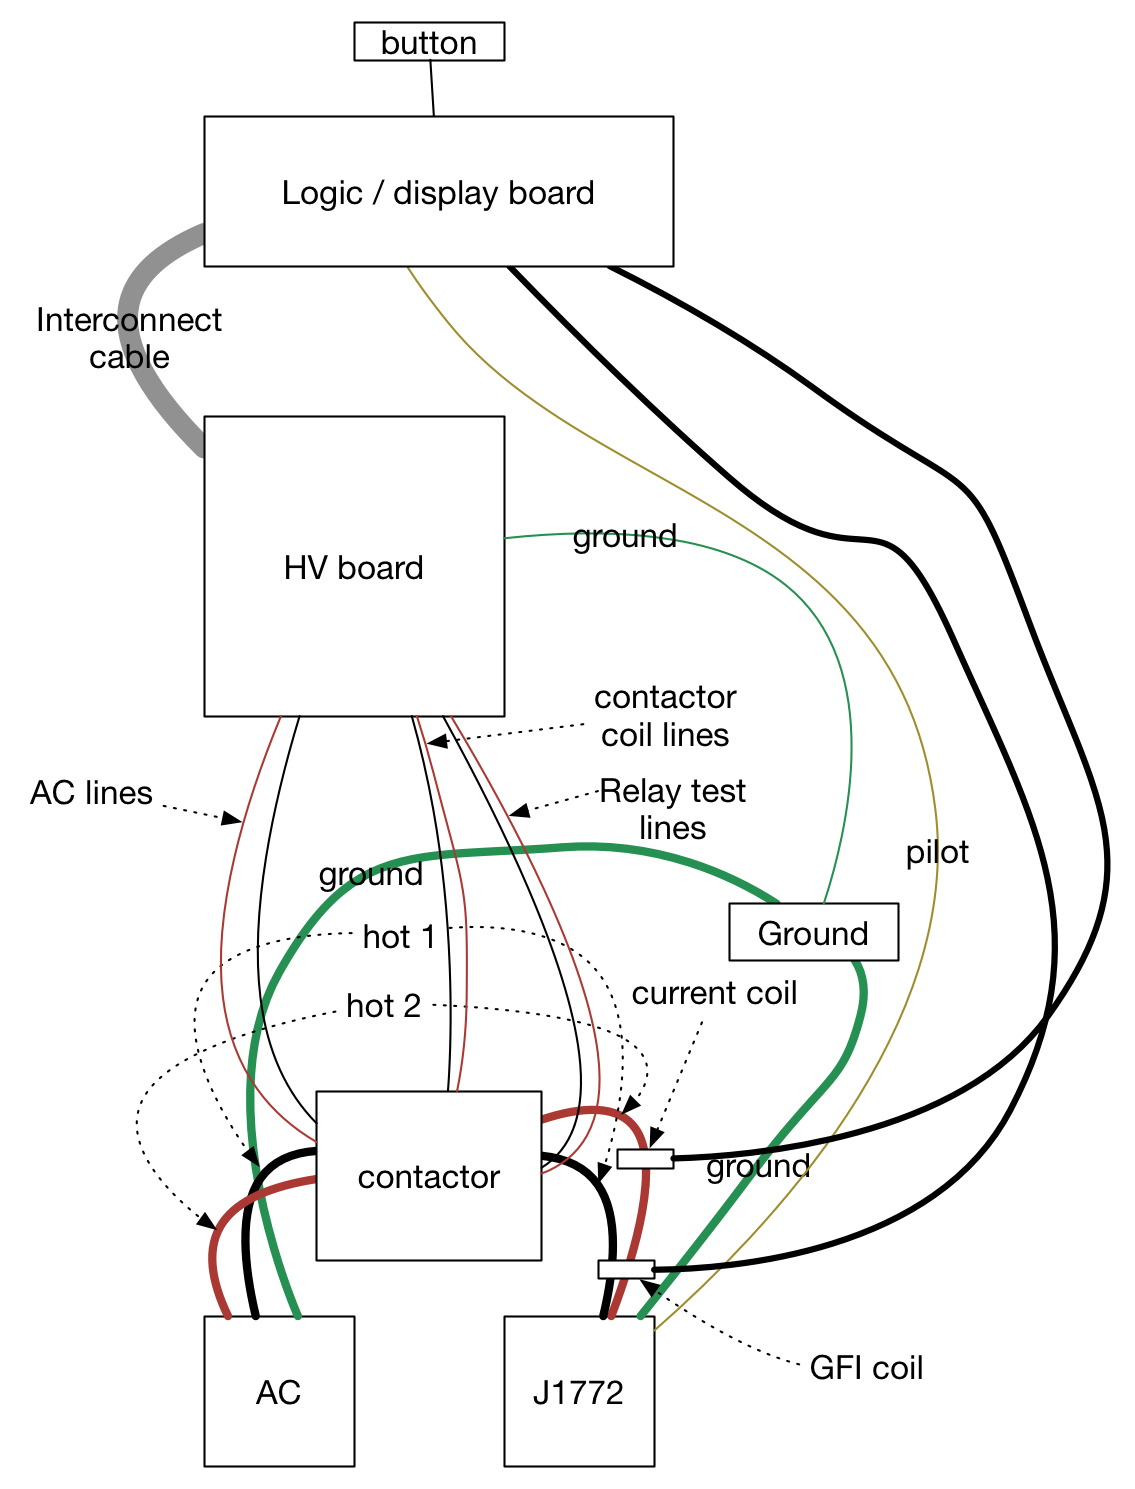 OpenEVSE_II_Wiring_Contactor geppetto electronics december 2014 240 volt contactor wiring diagram at readyjetset.co